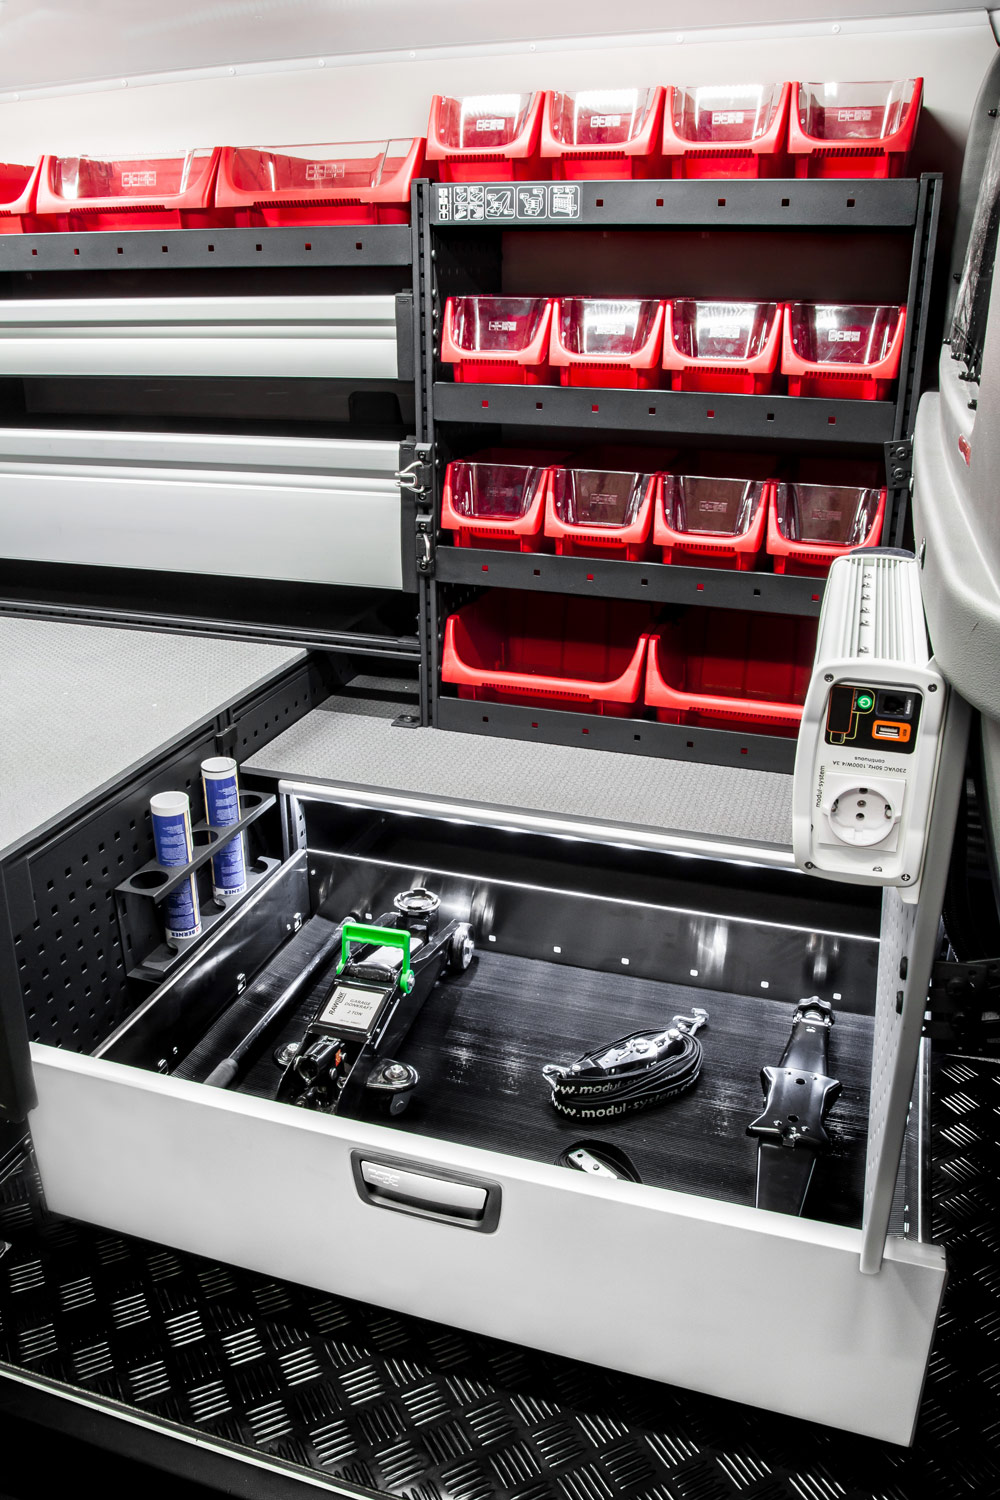 Example of modul-system drawer open with tools and storage boxes